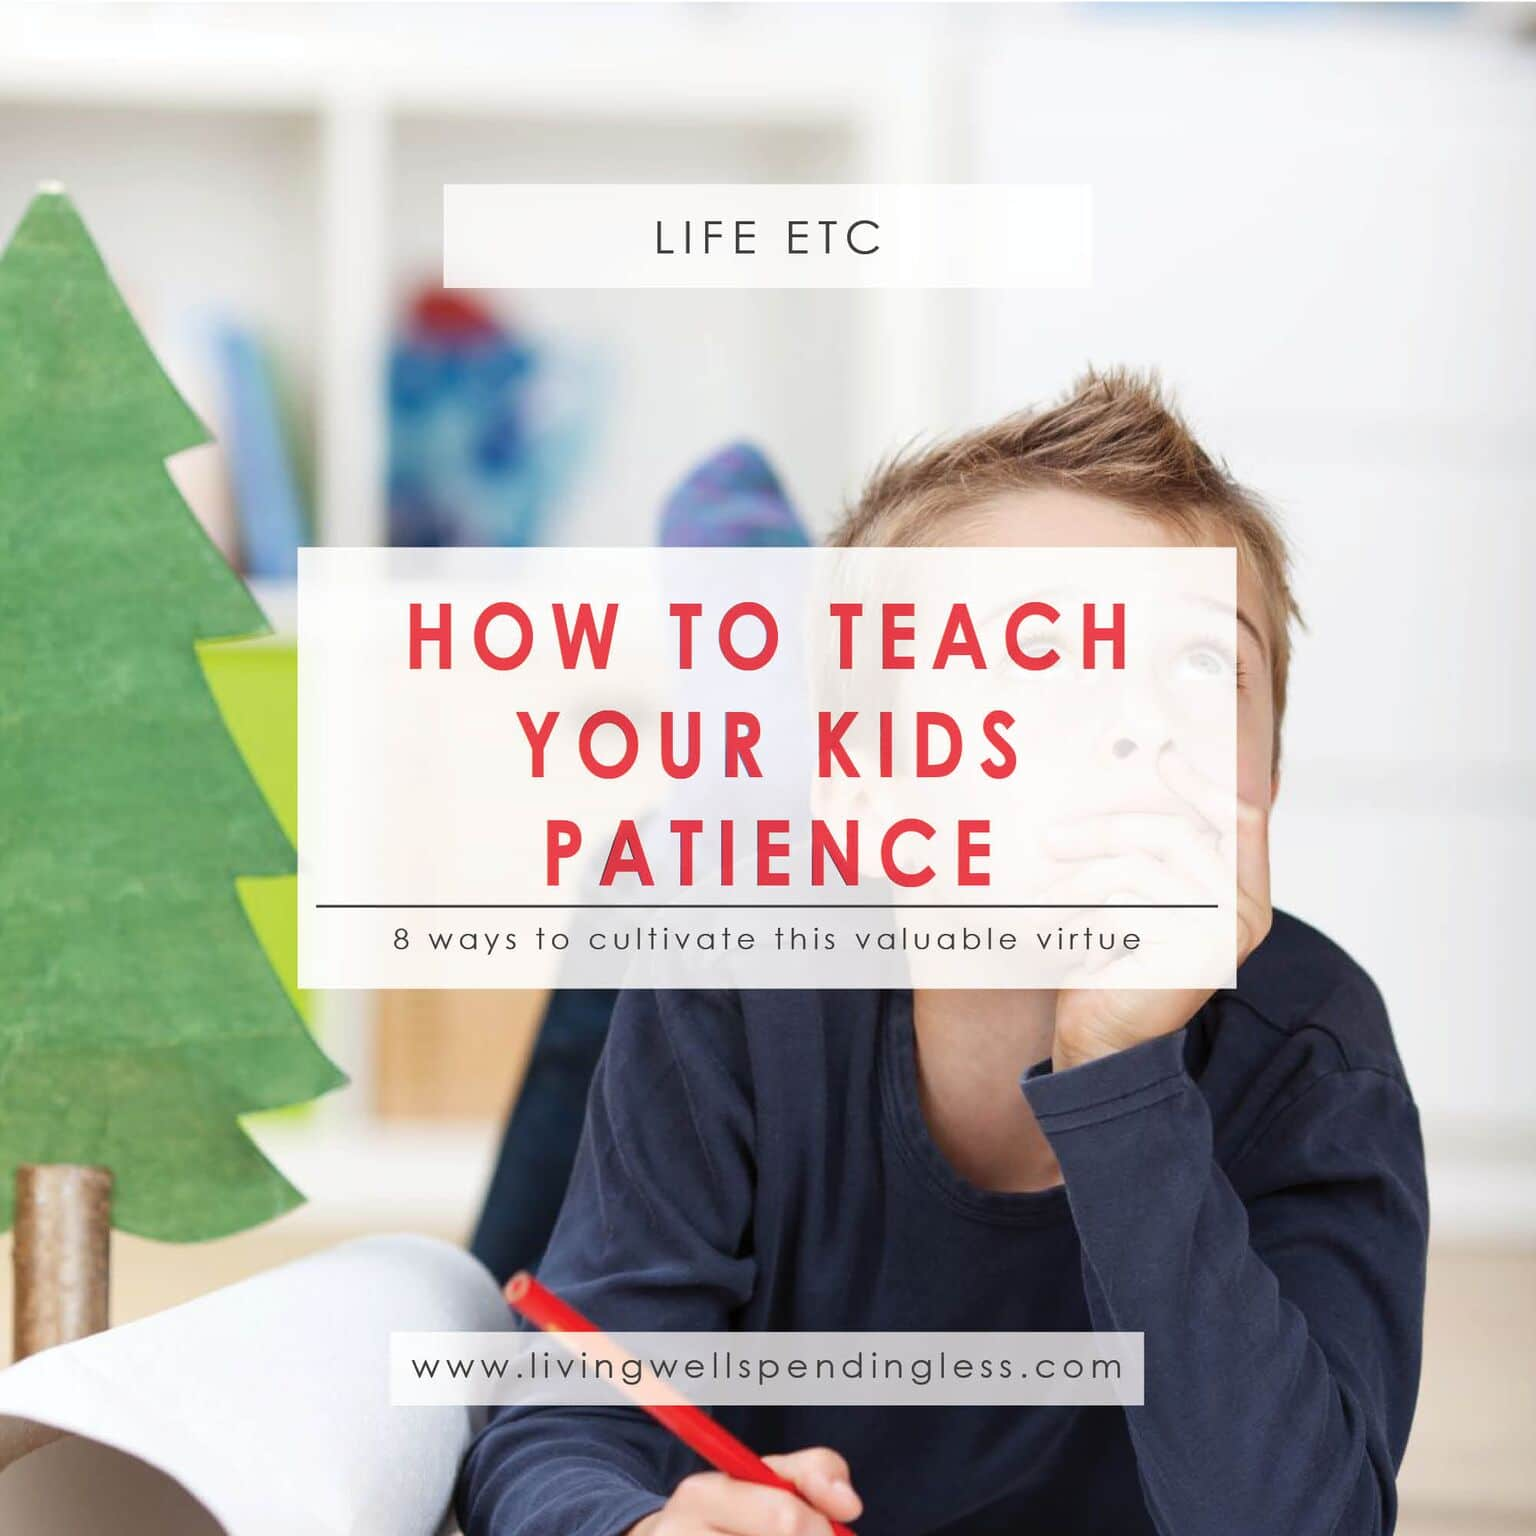 How to Teach Your Kids Patience | 8 Ways to Cultivate Patience in ...